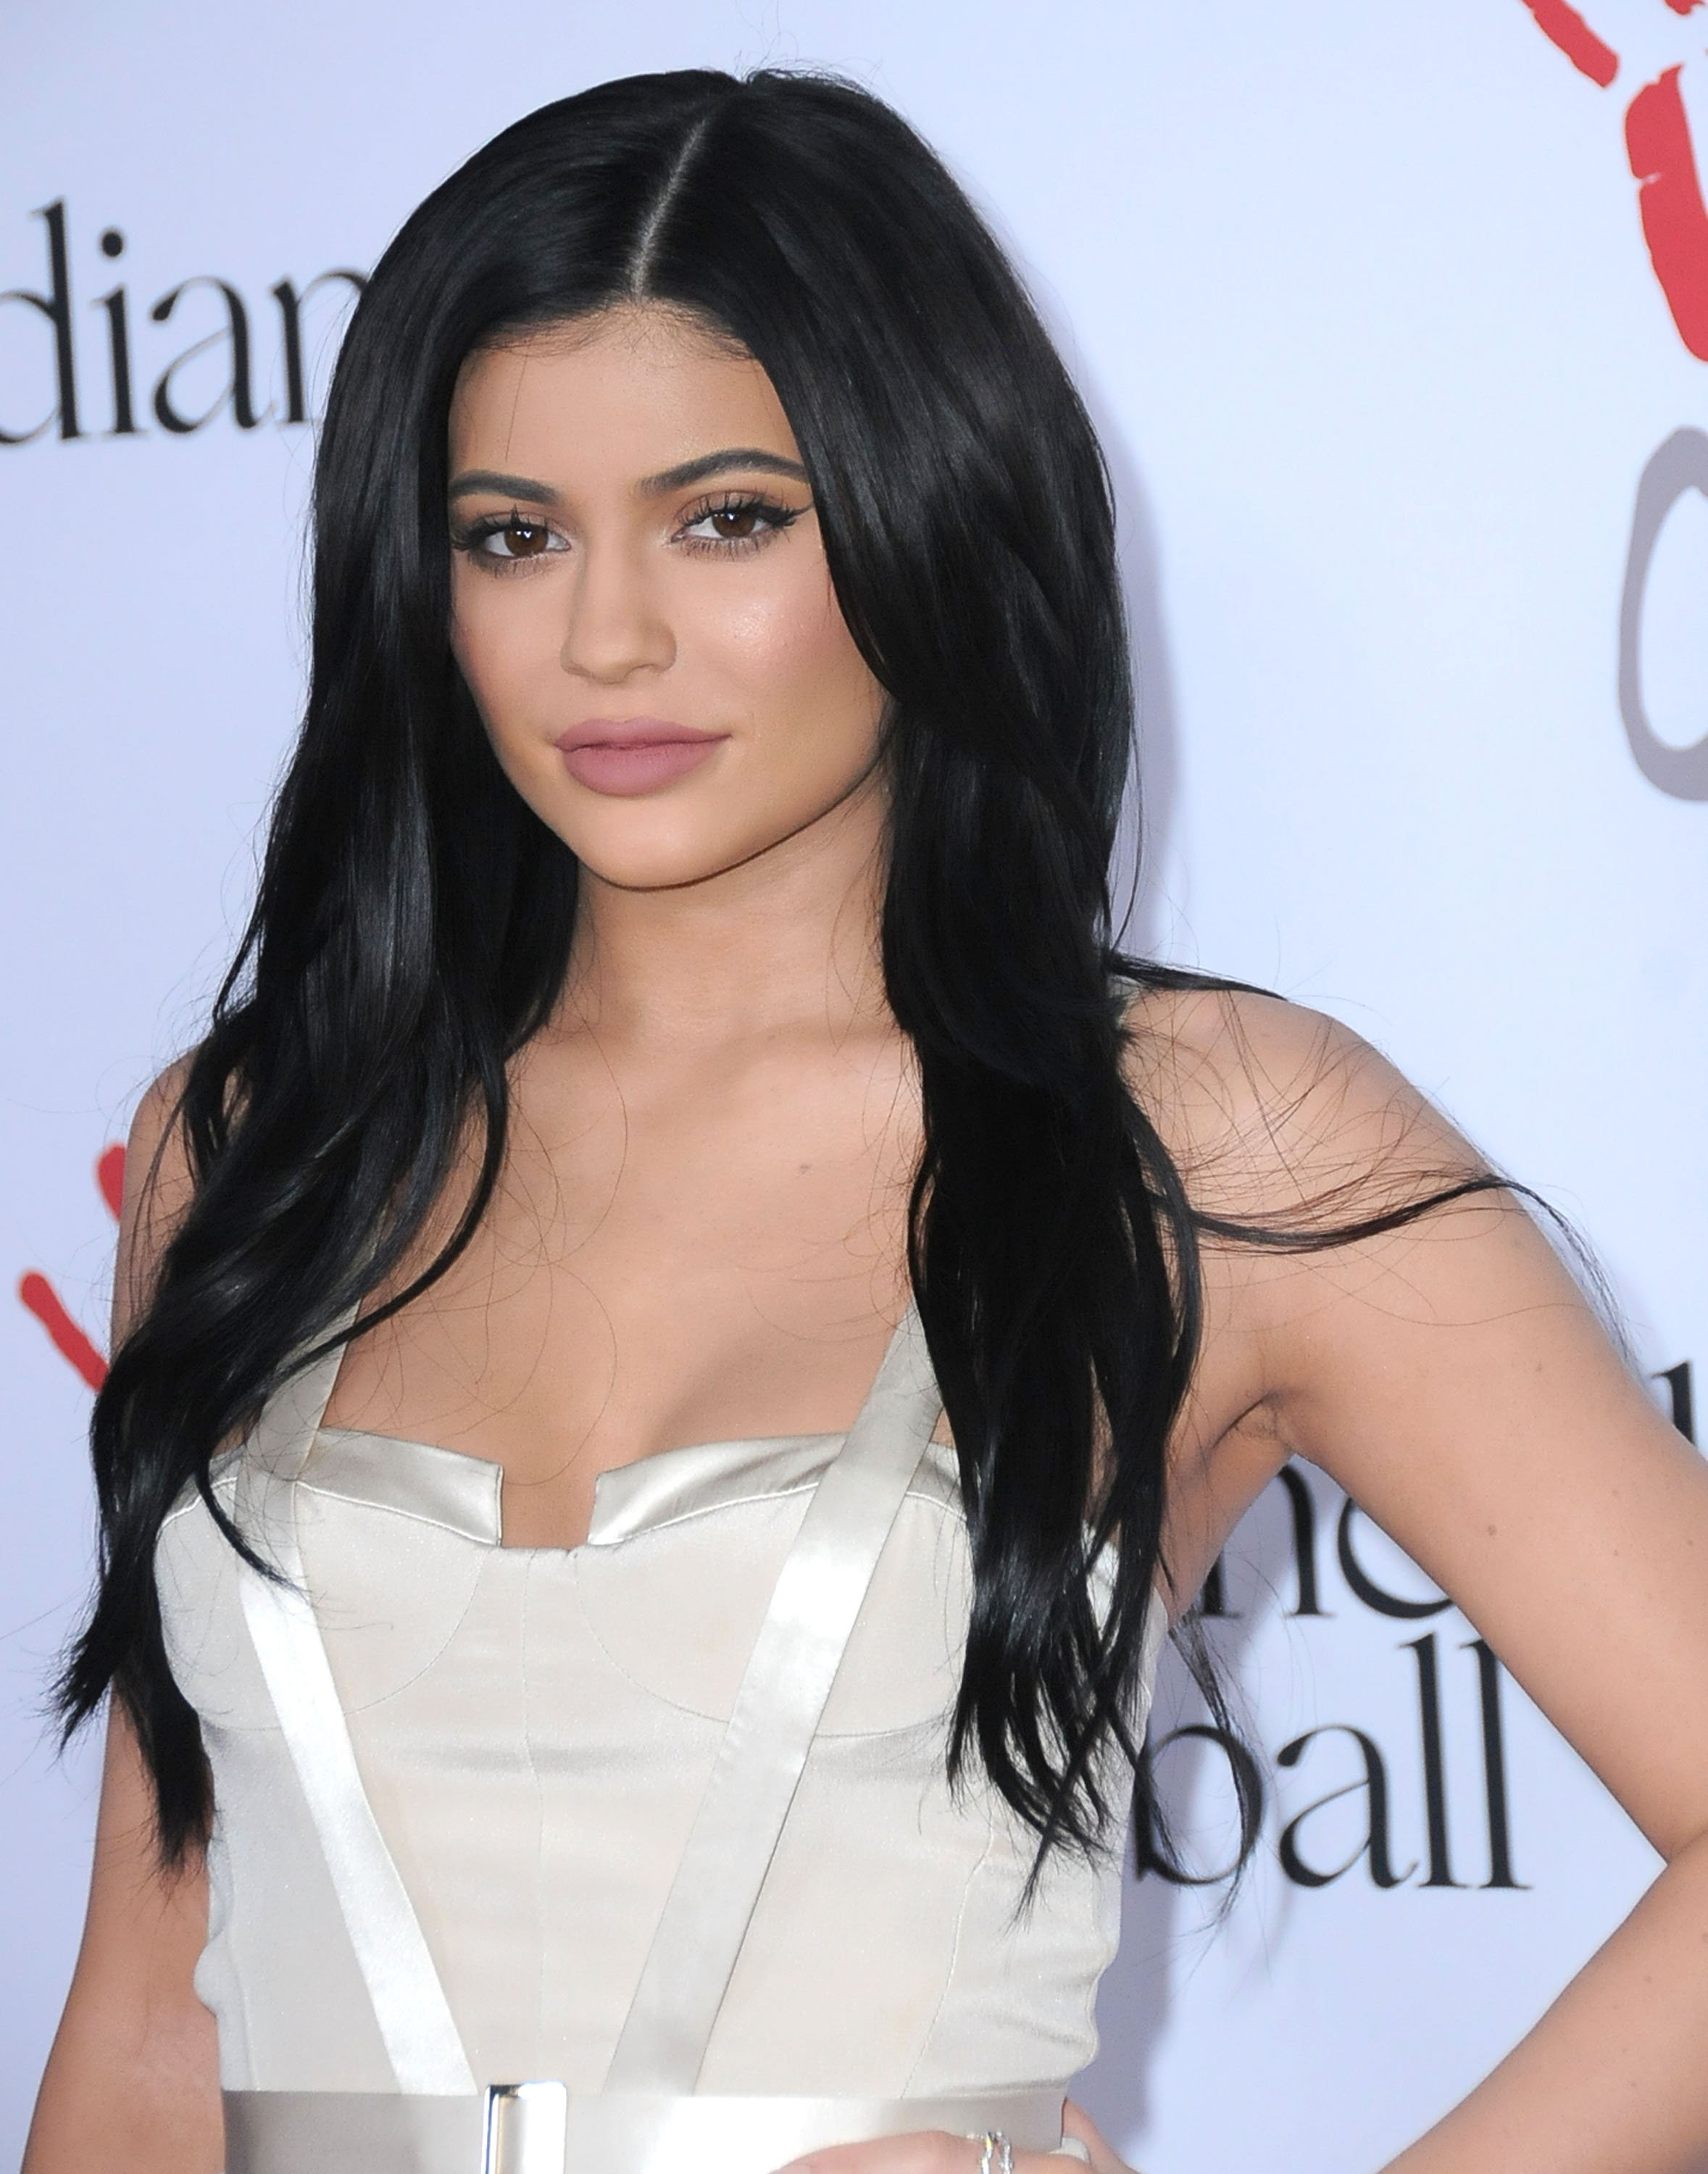 Kylie Jenner attends the 2nd Annual Diamond Ball at The Barker Hanger on December 10, 2015, in Santa Monica, California. | Source: Getty Images.